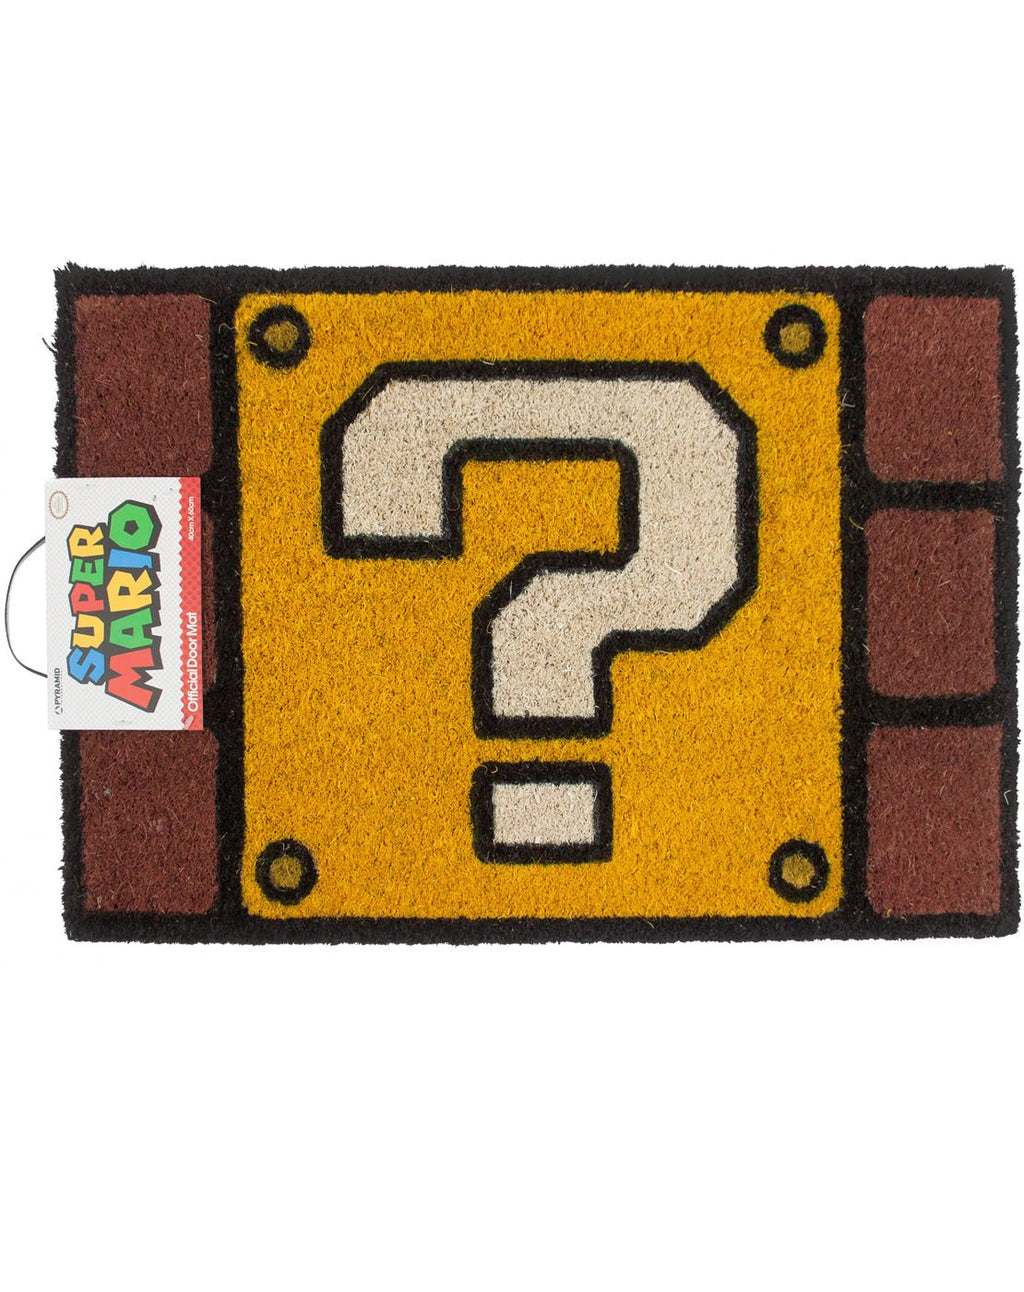 Super Mario Question Mark Block Door Mat